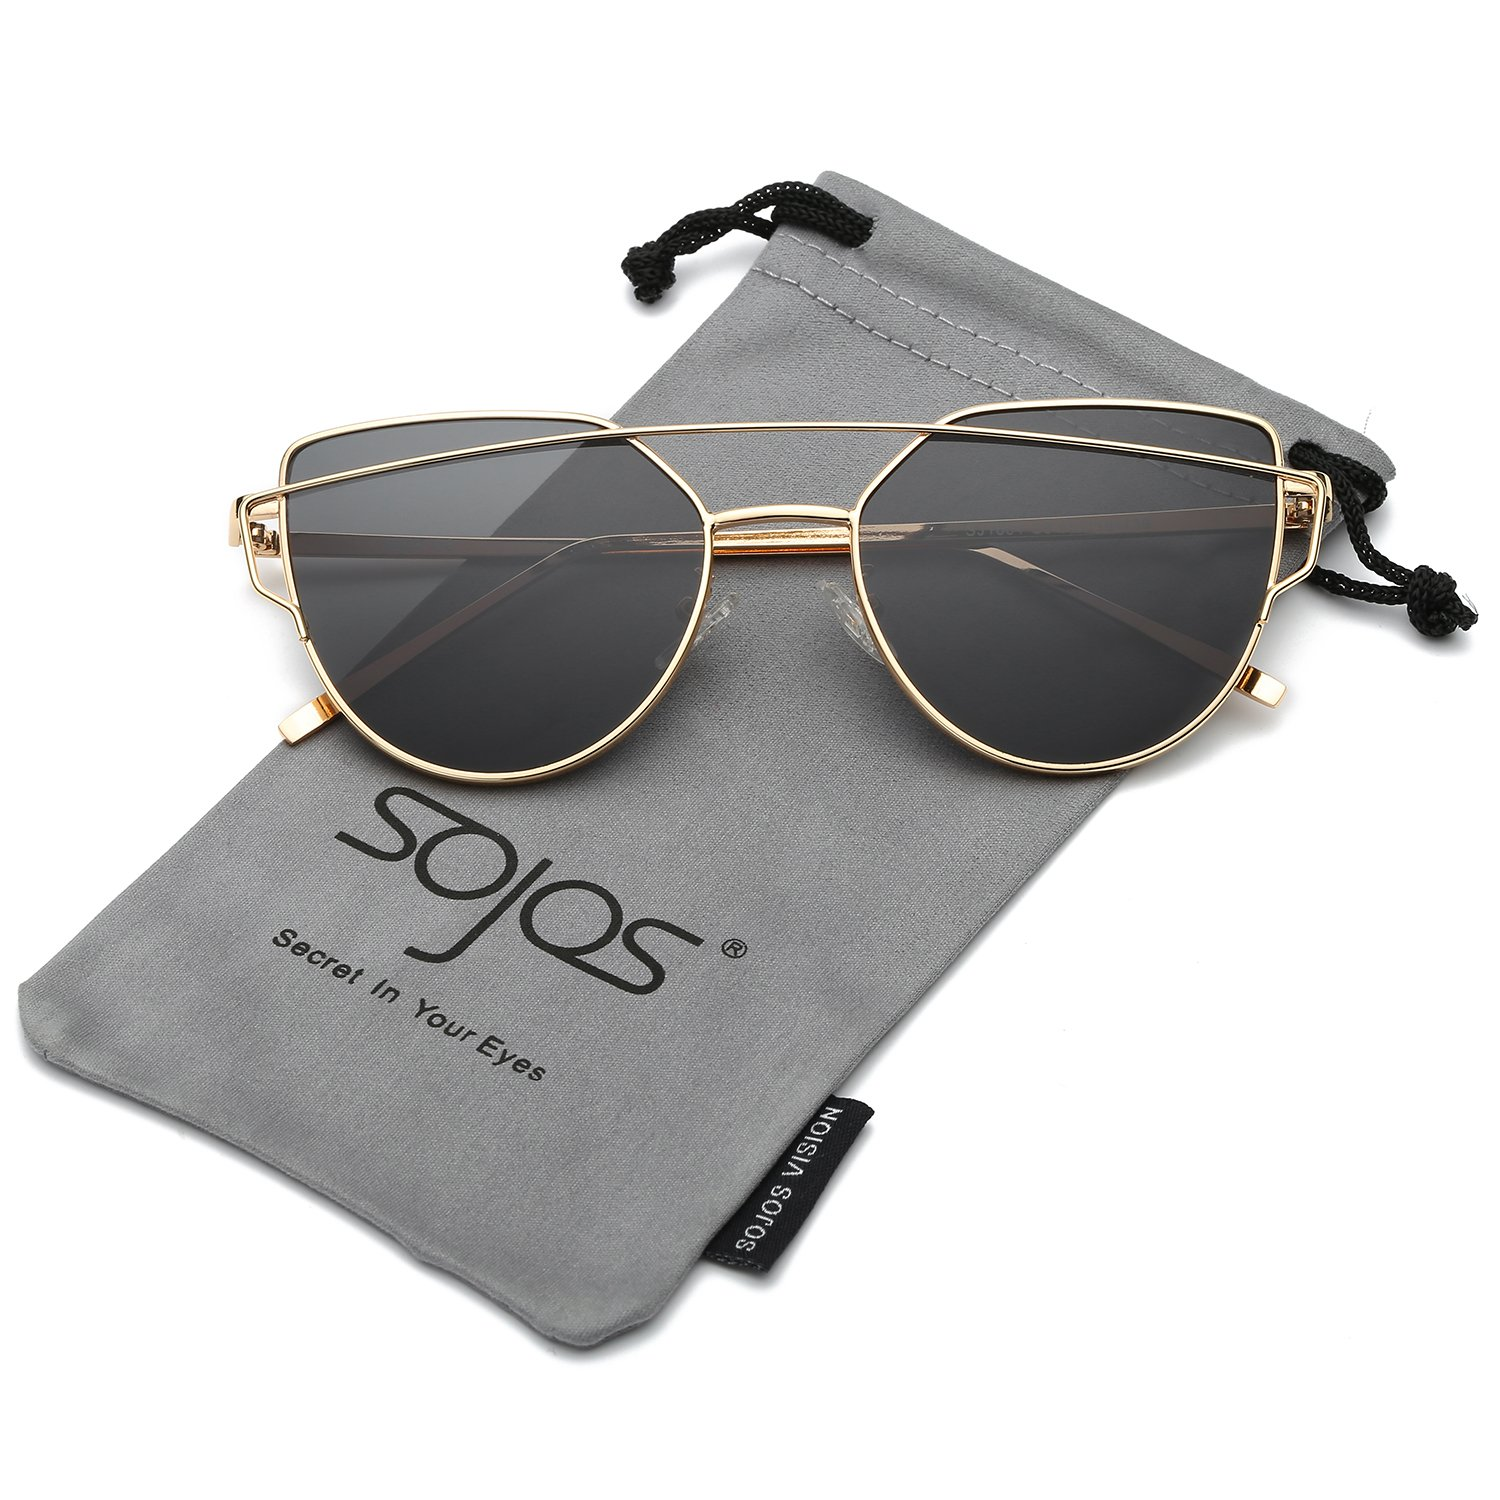 SOJOS Cat Eye Mirrored Flat Lenses Street Fashion Metal Frame Women Sunglasses SJ1001 with Gold Frame/Grey Lens